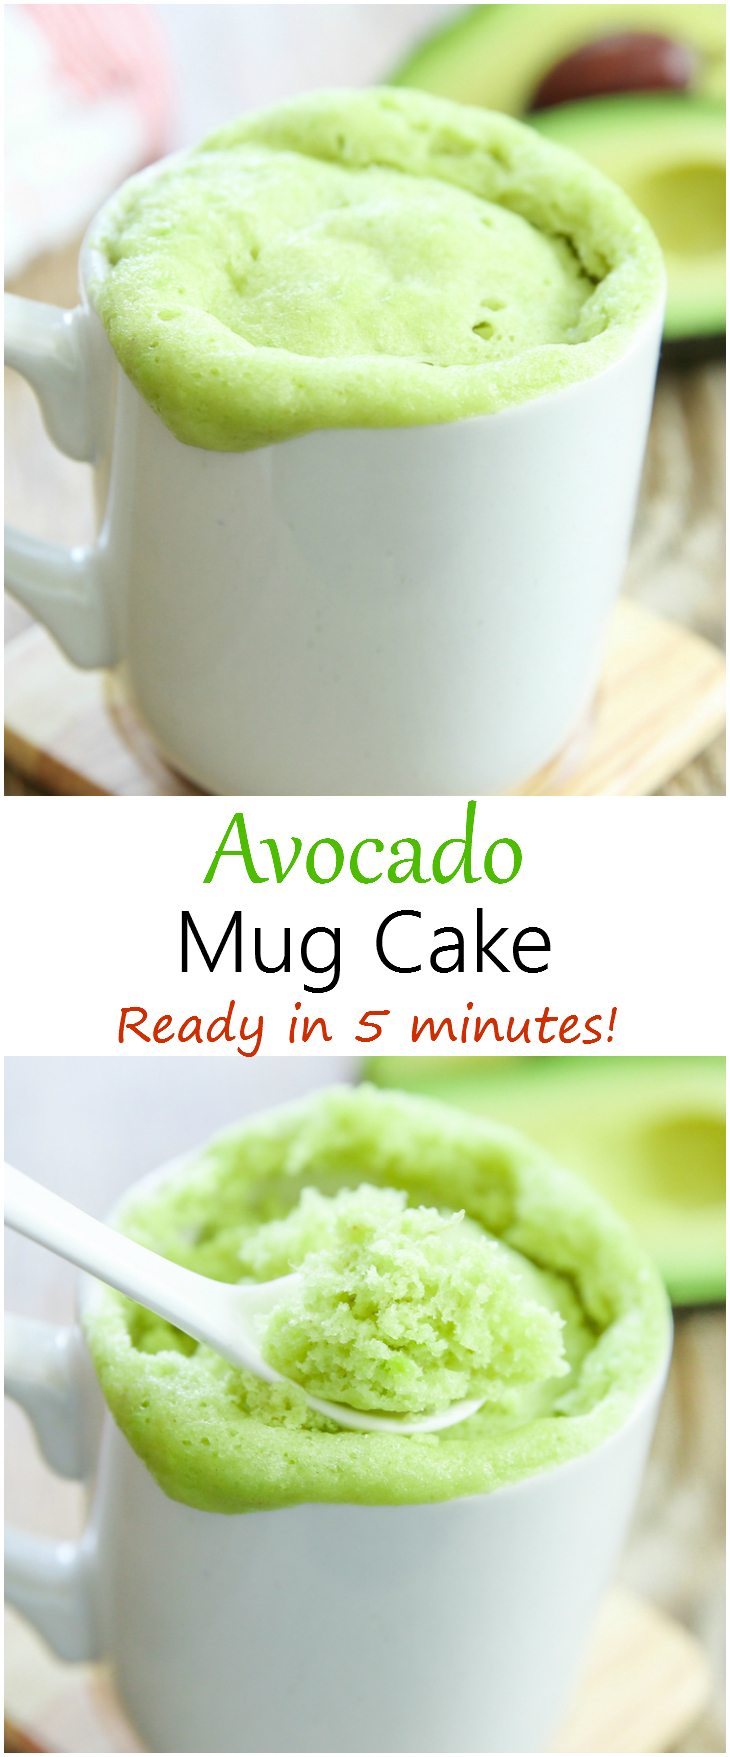 avocado mug cake photo collage